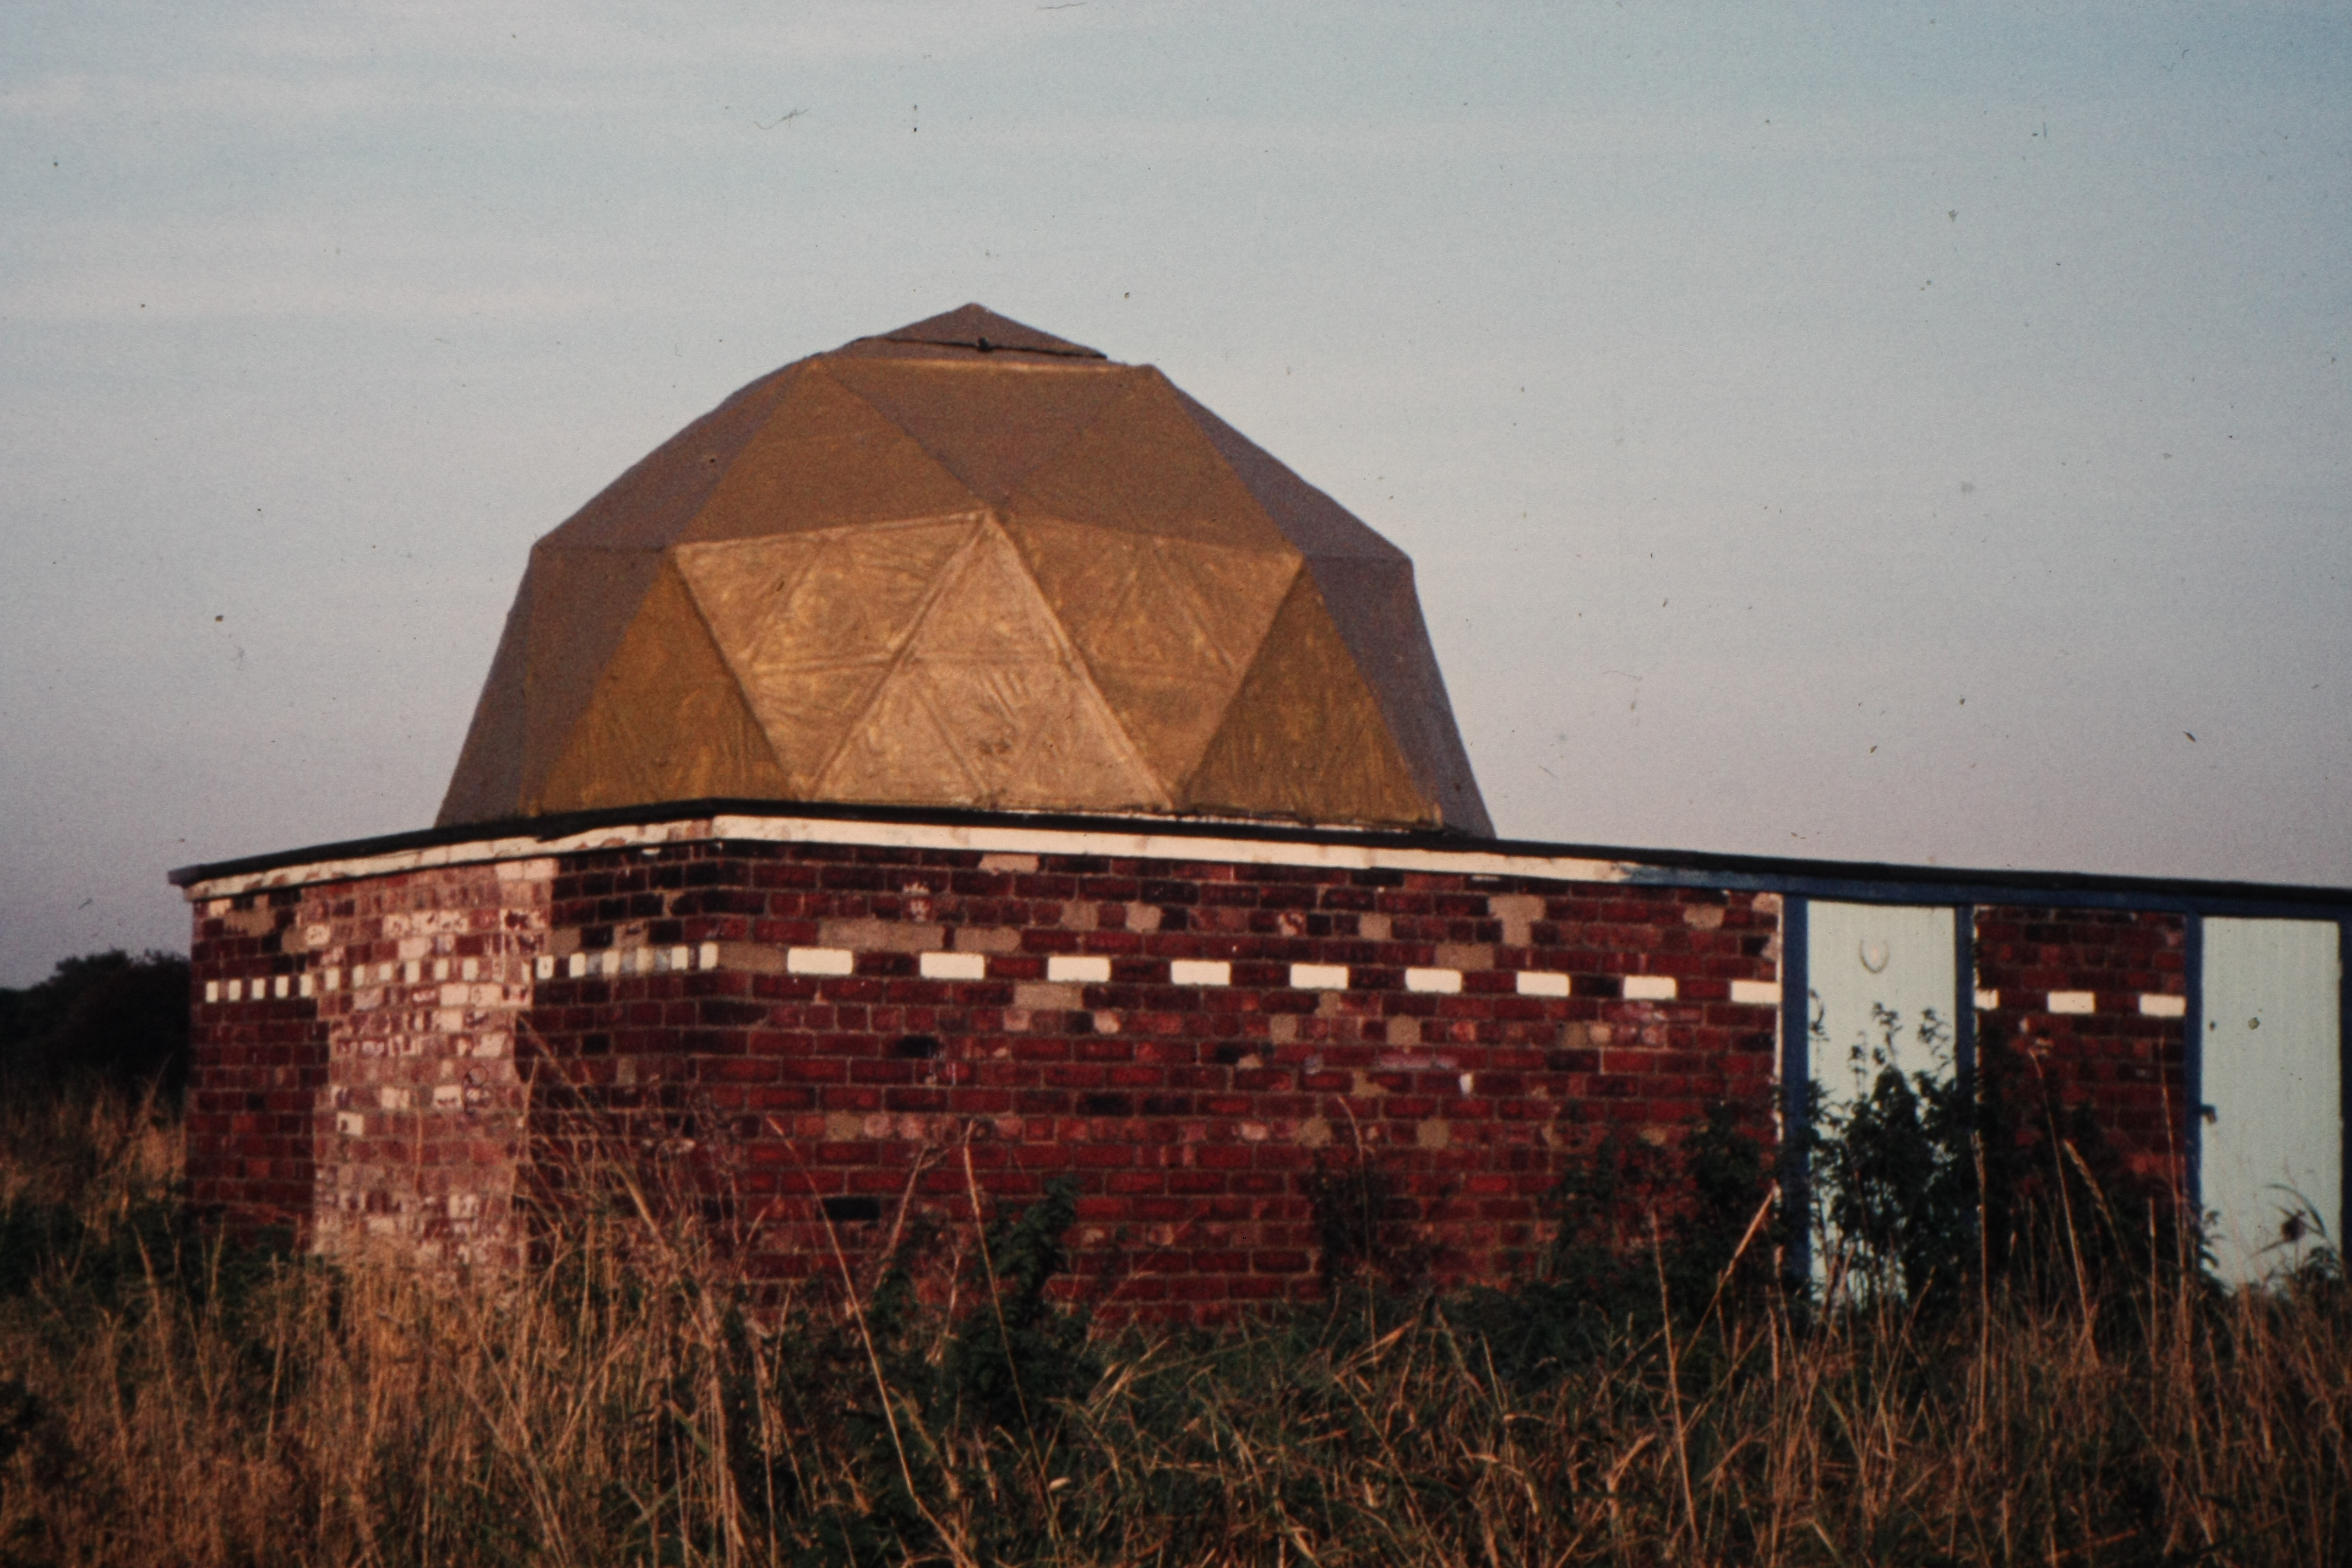 York Astro observatory with dome around 1977 at Acaster Airfield